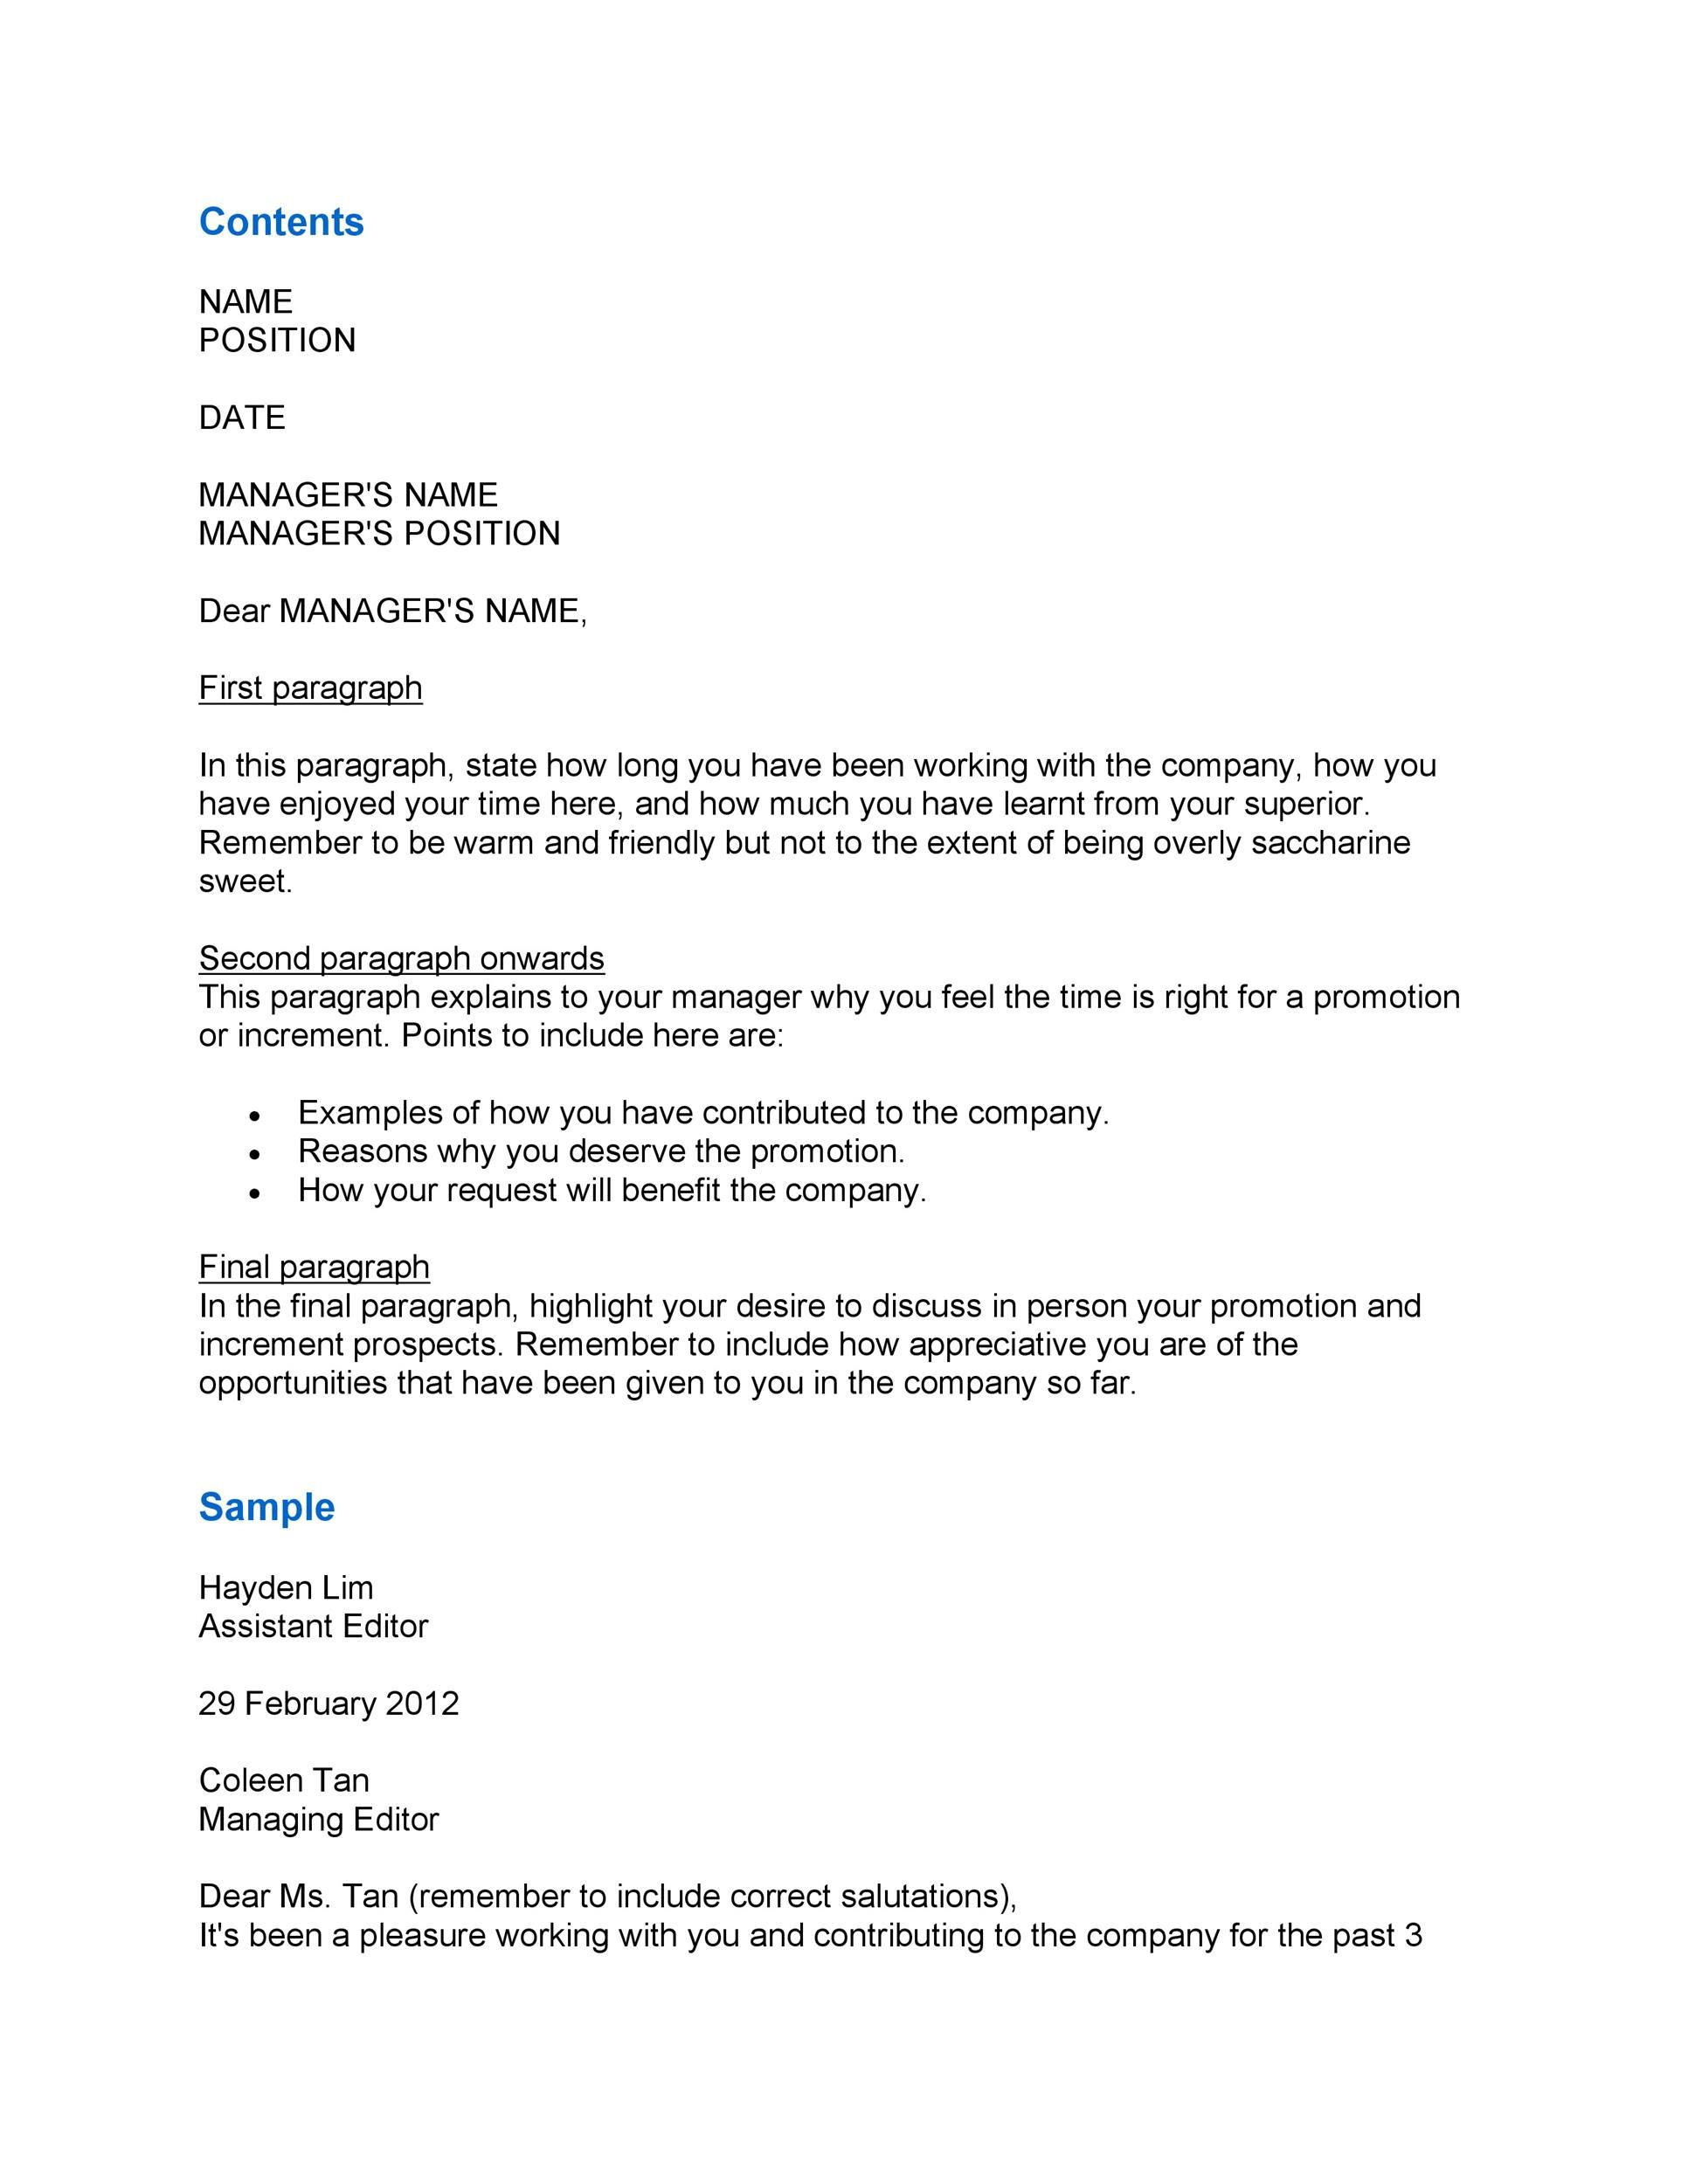 008 Fascinating Salary Increase Letter Template Picture  From Employer To Employee Australia No ForFull